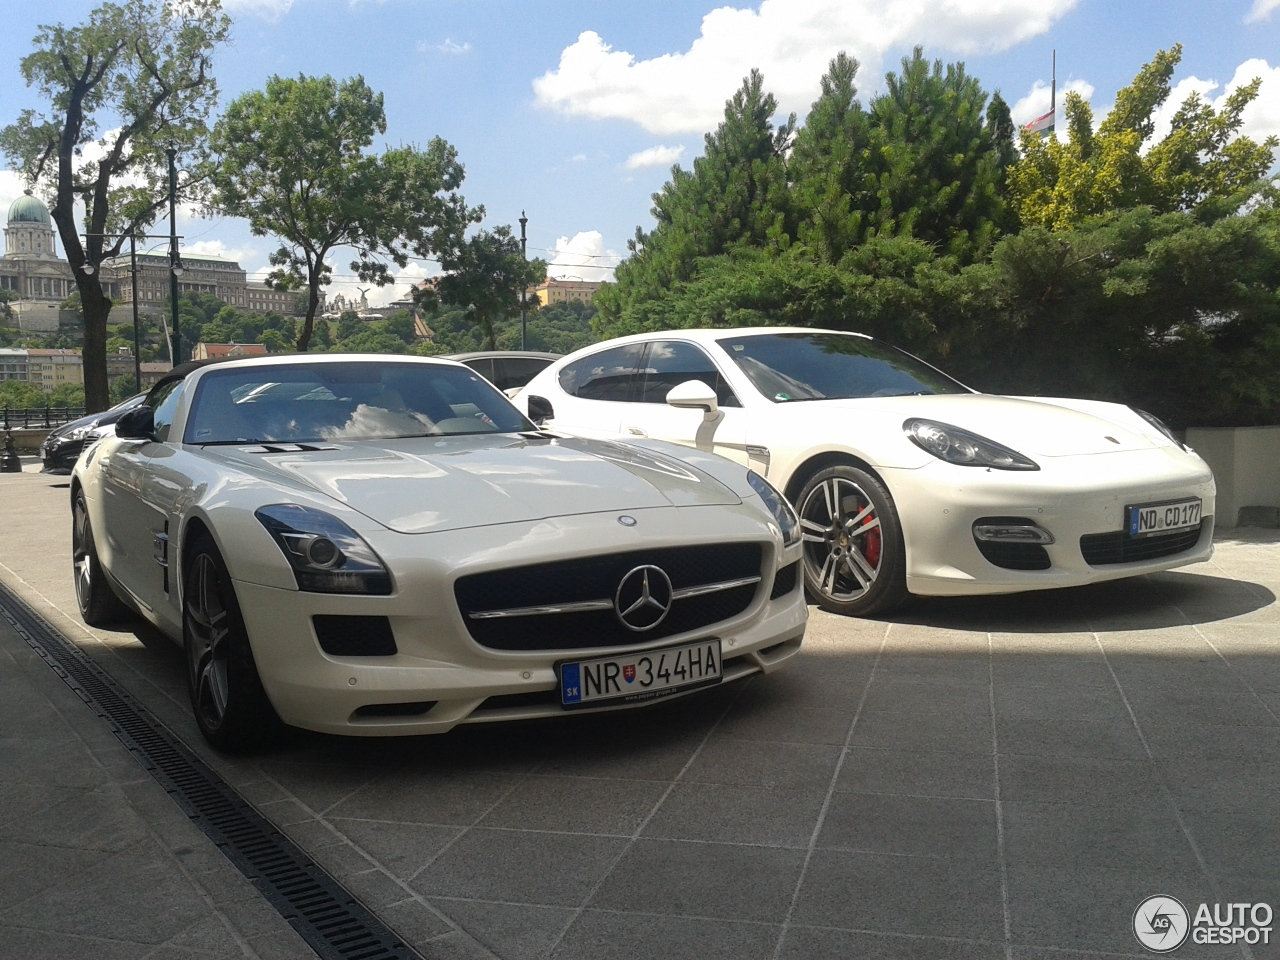 Mercedes benz sls amg gt roadster 24 oktober 2015 for 2015 mercedes benz sls amg